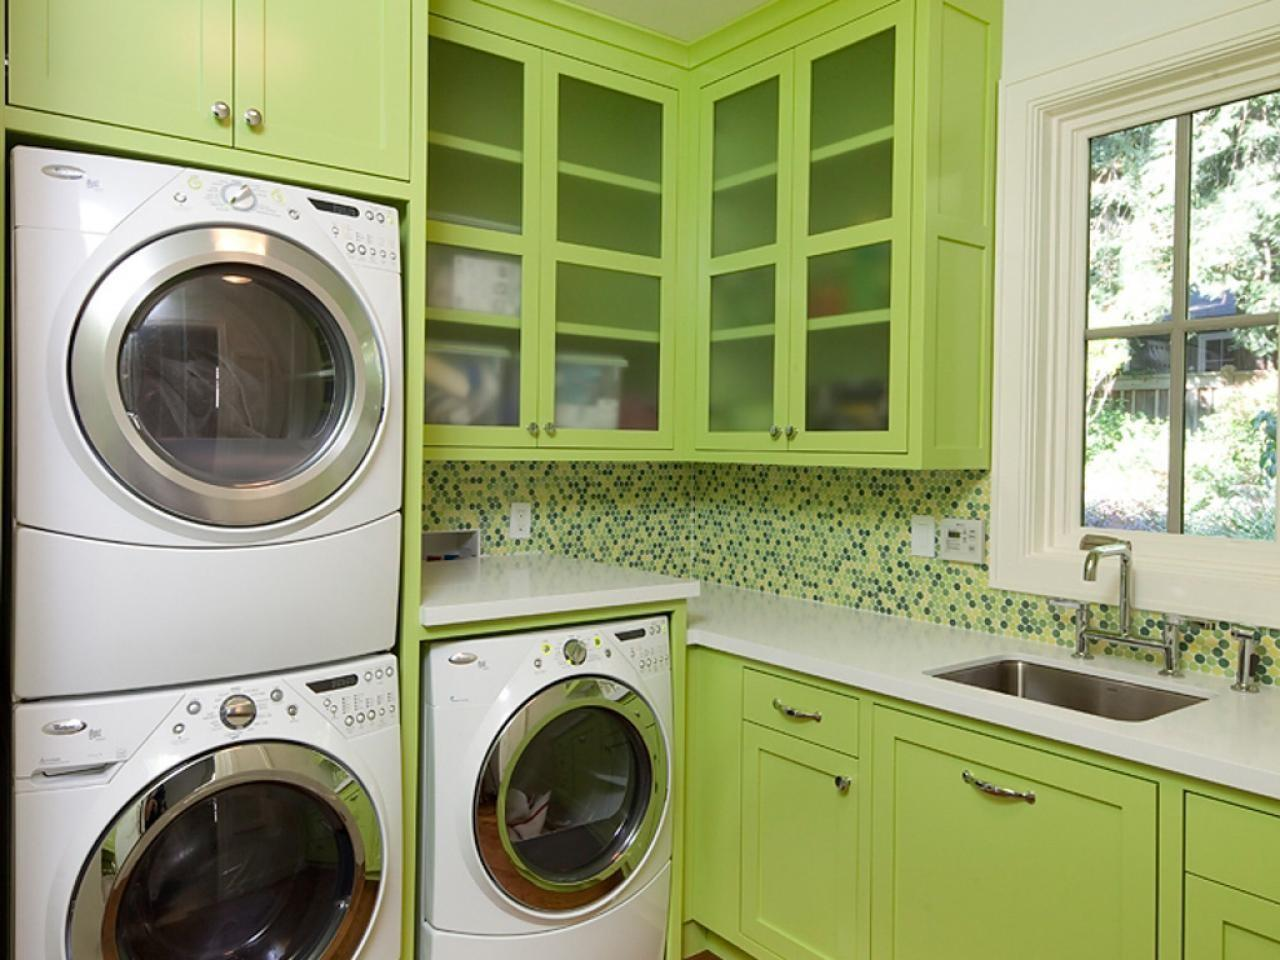 Laundry Room Shelving Options Tips Ideas